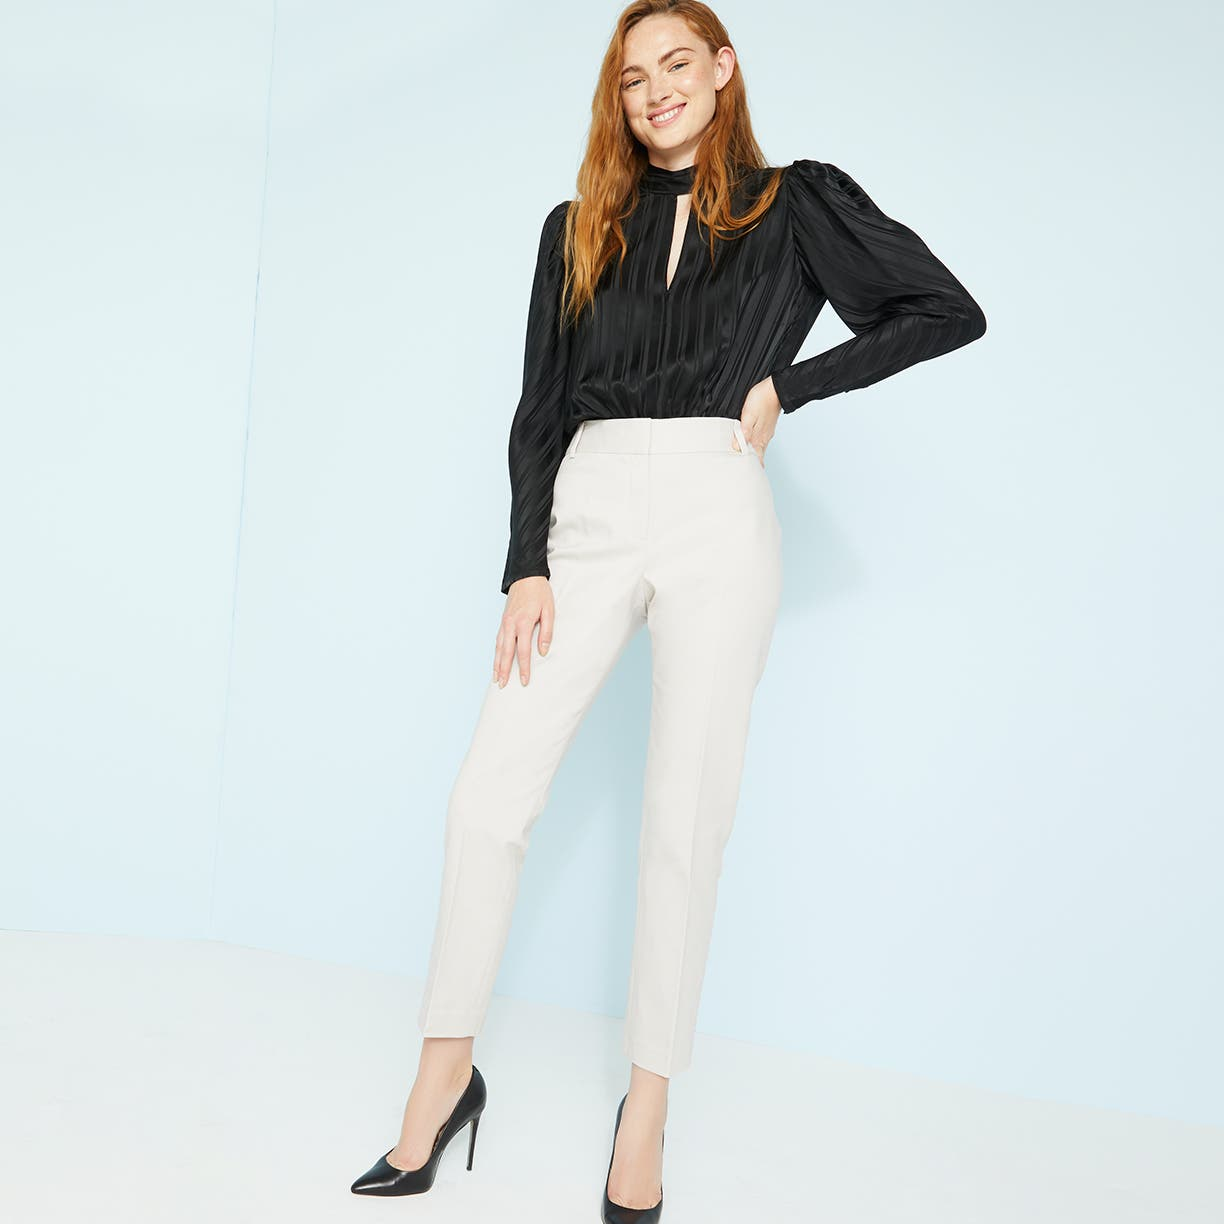 Nordstrom: Women's Comtemporary Brands Up to 70% off